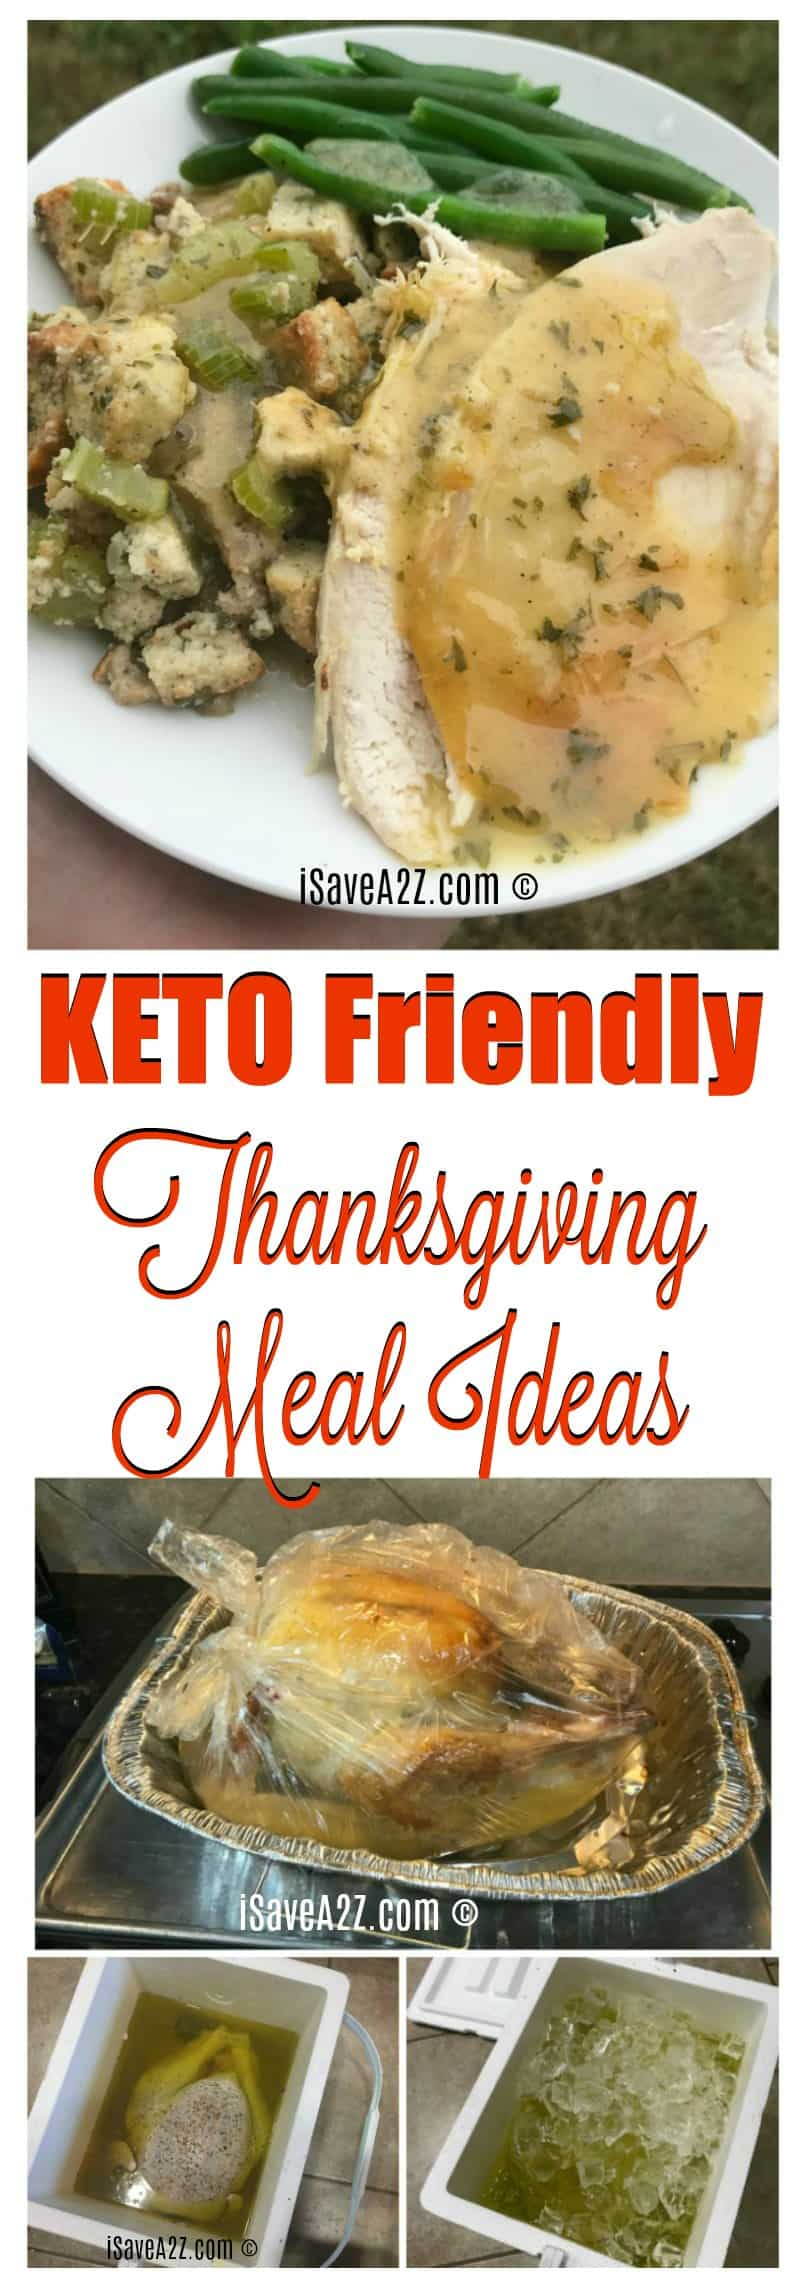 Keto Turkey Gravy Recipe